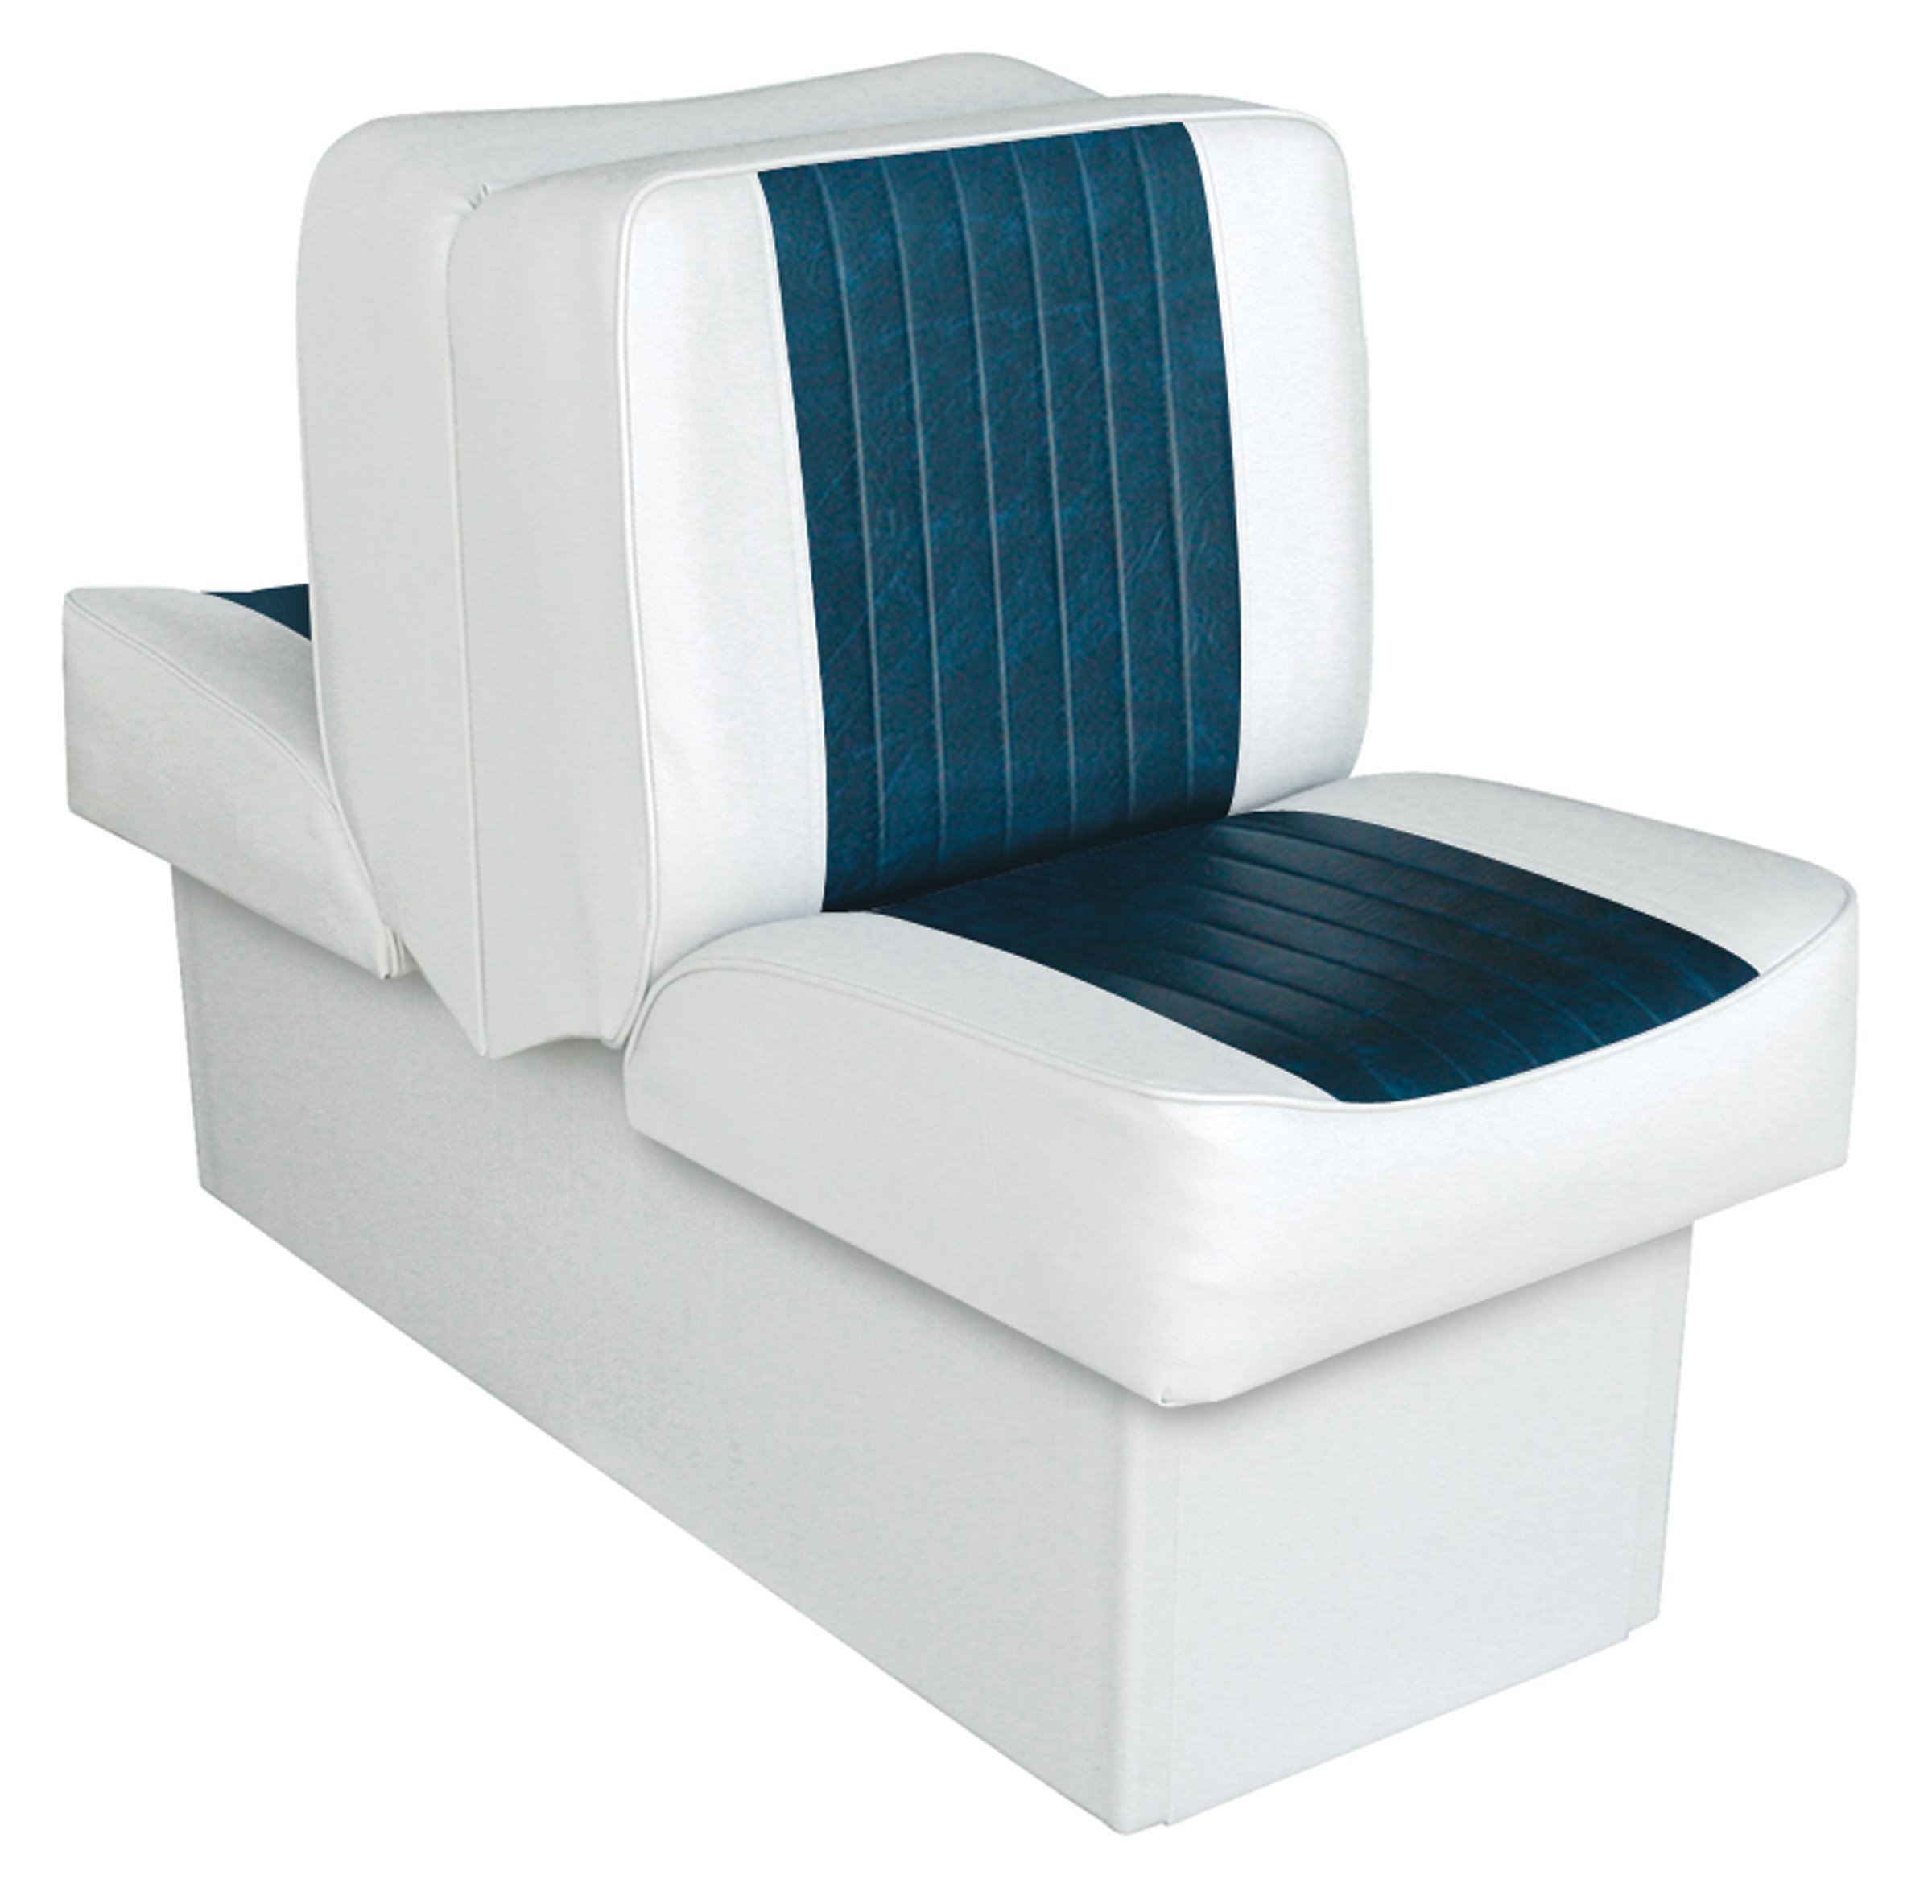 Wise 8WD707P-1-924 Deluxe Lounge Seat (White/Navy)